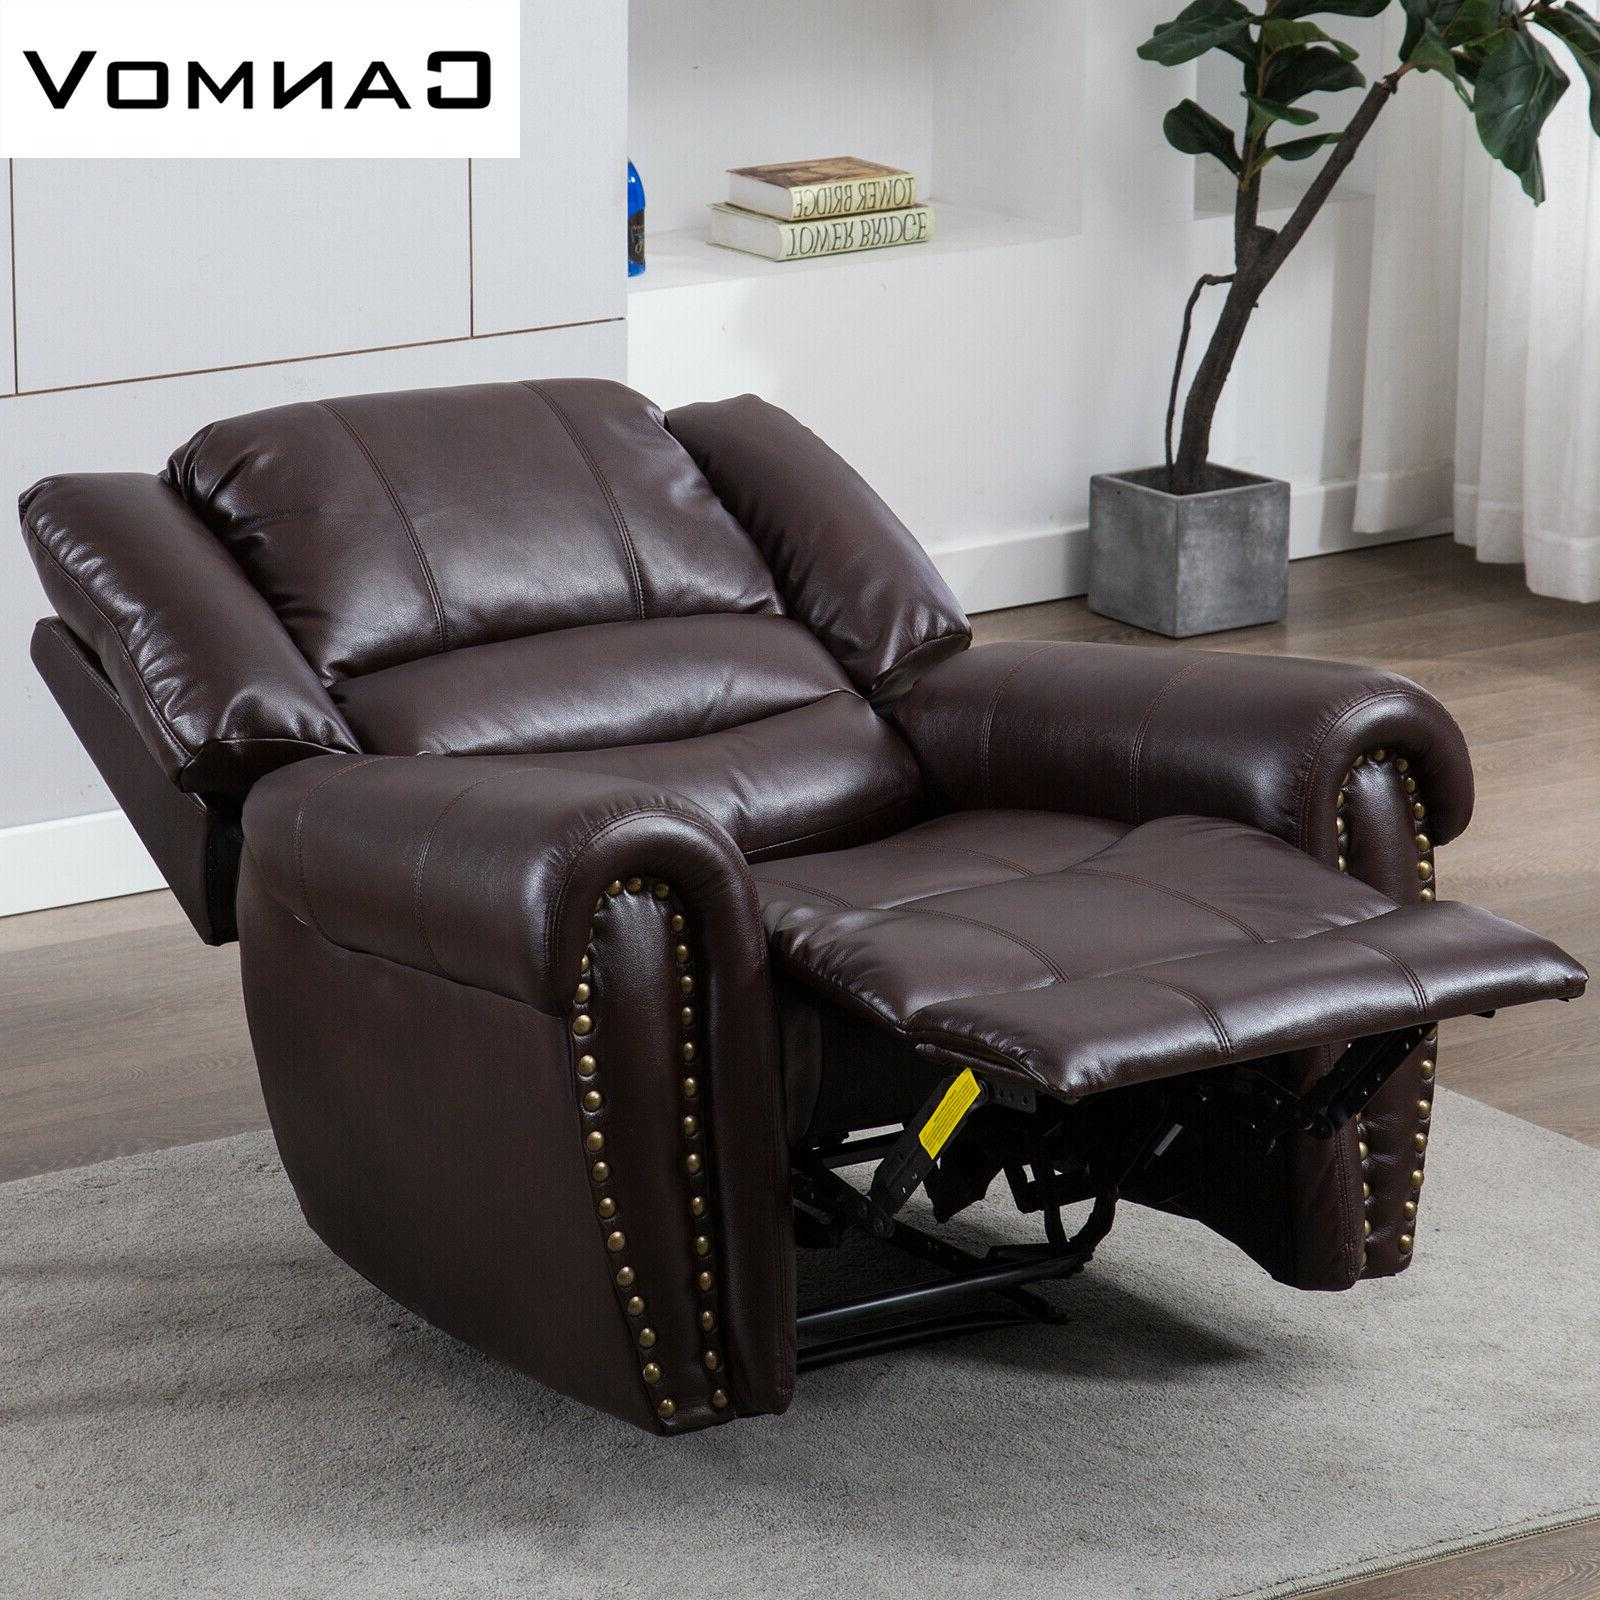 Leather Chair Overstuffed Backrest